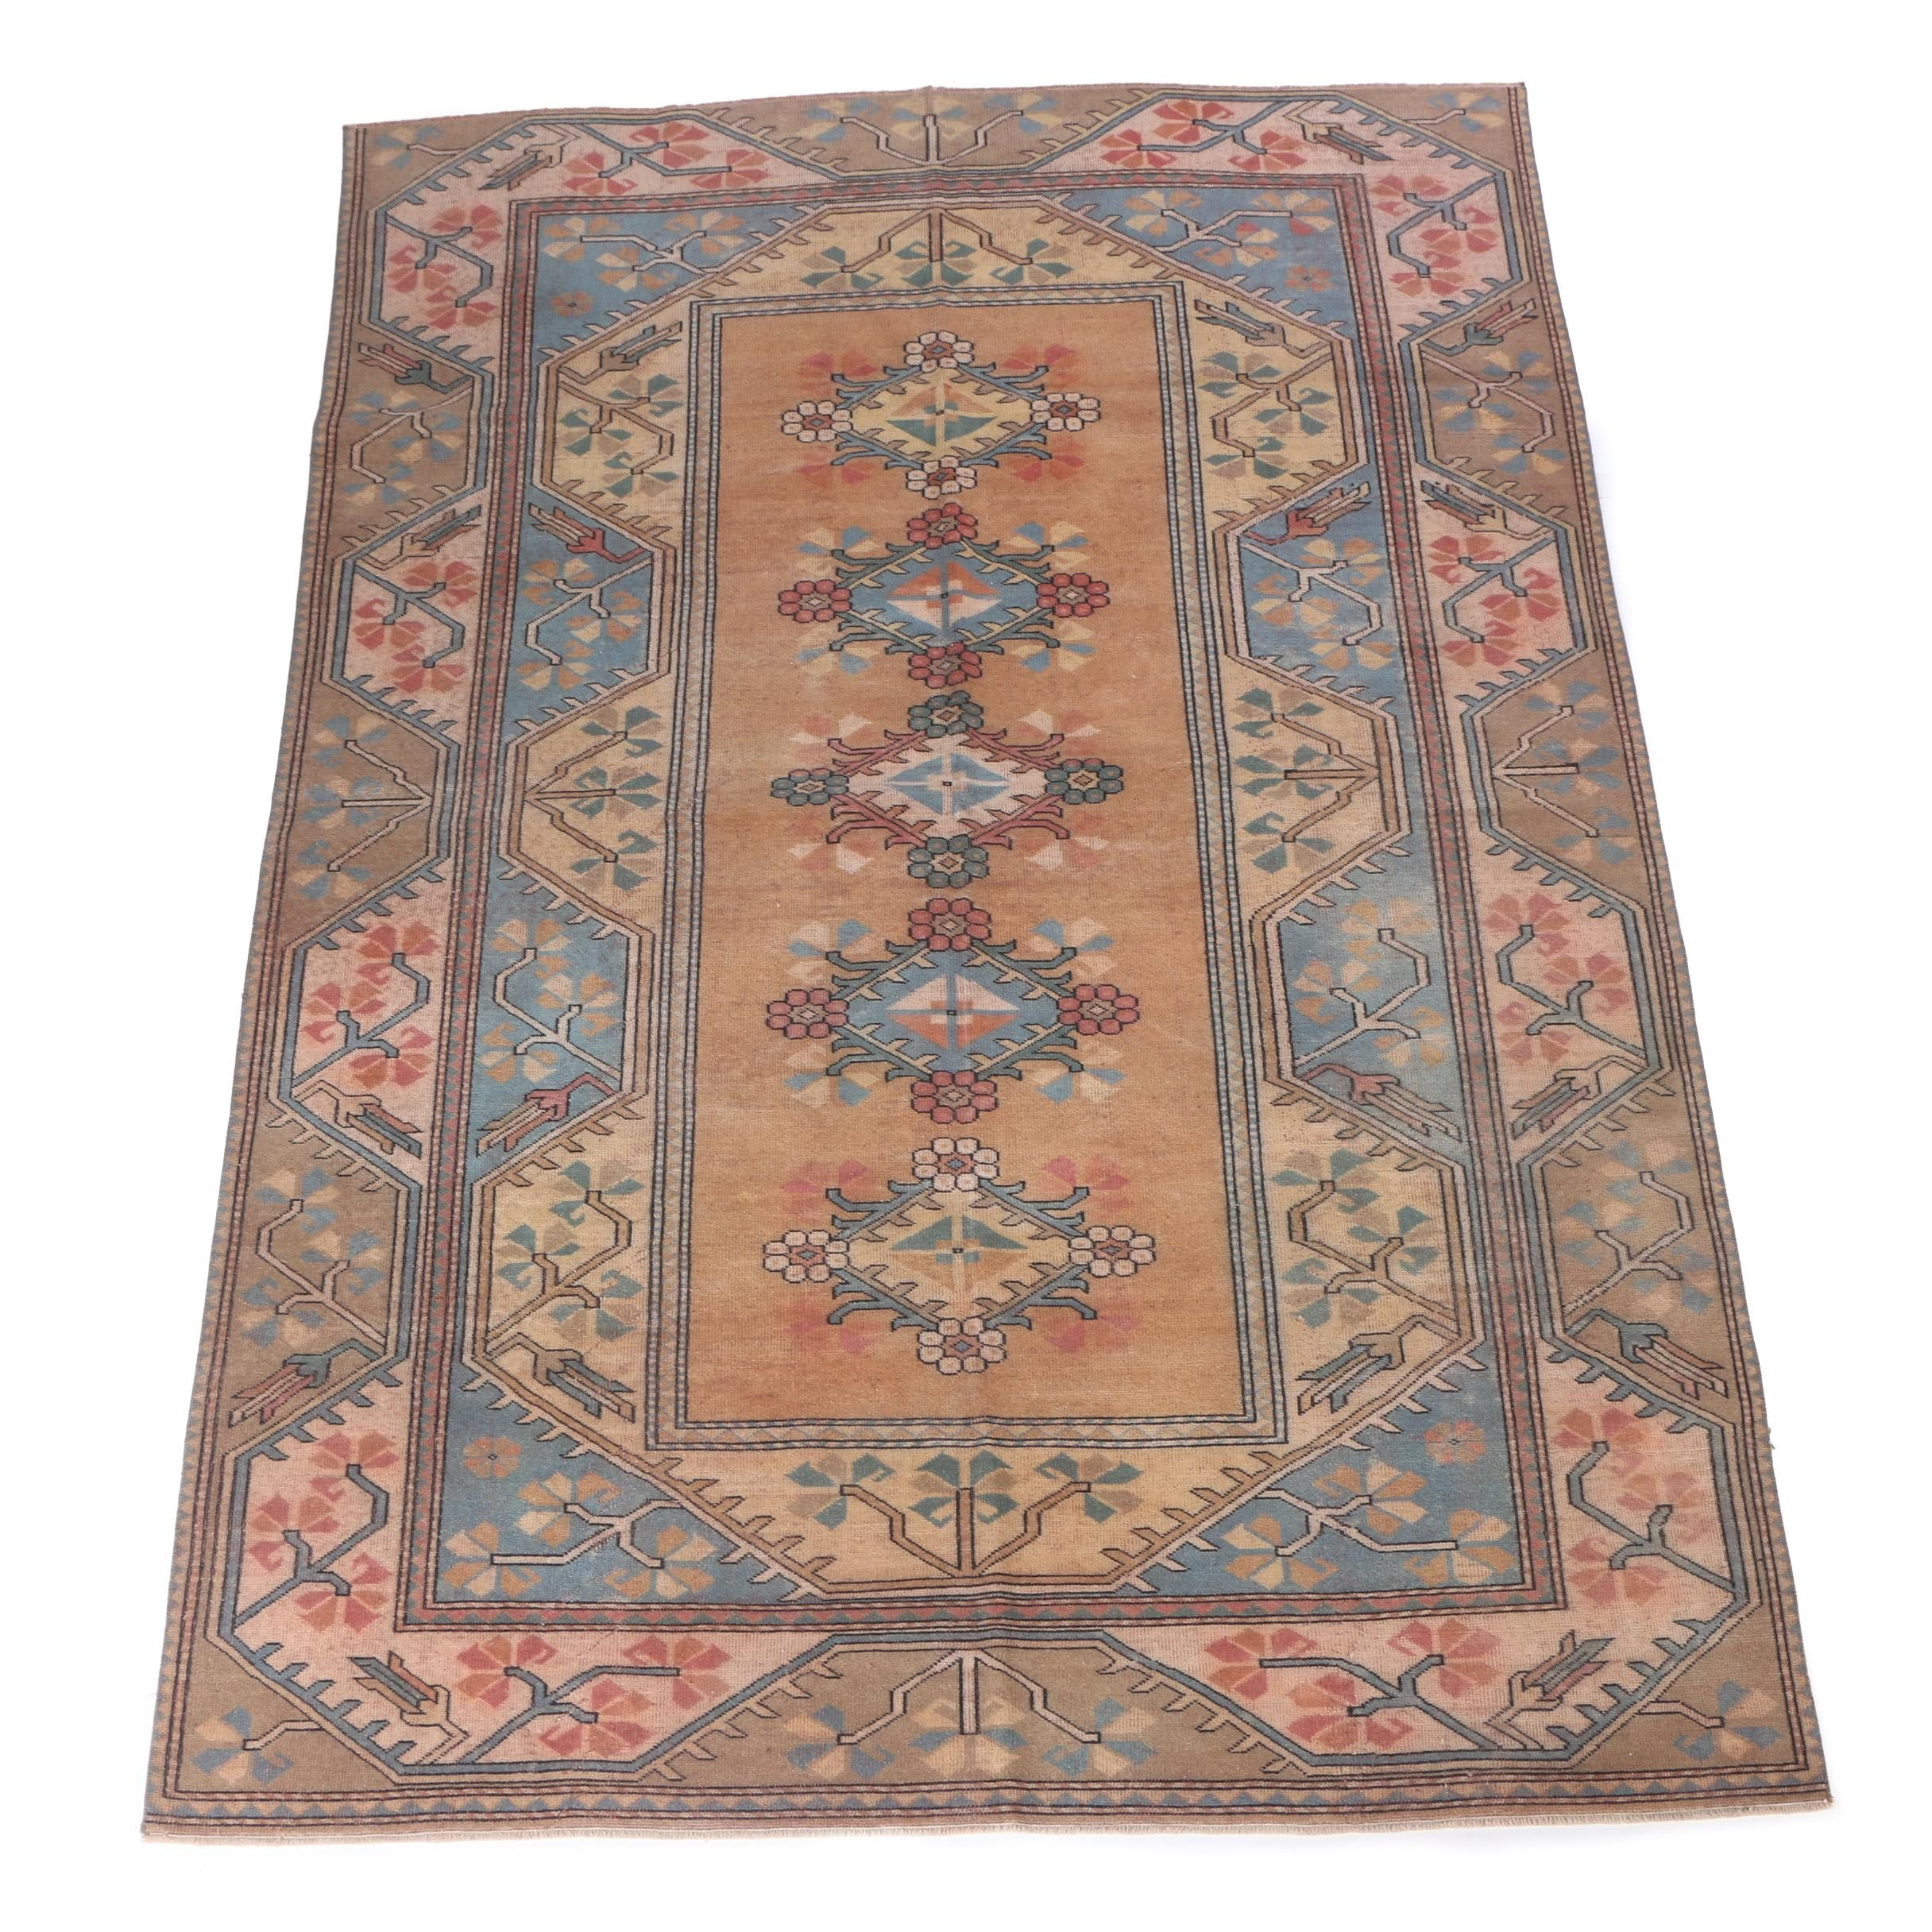 Hand-Knotted Kazak Style Wool Area Rug